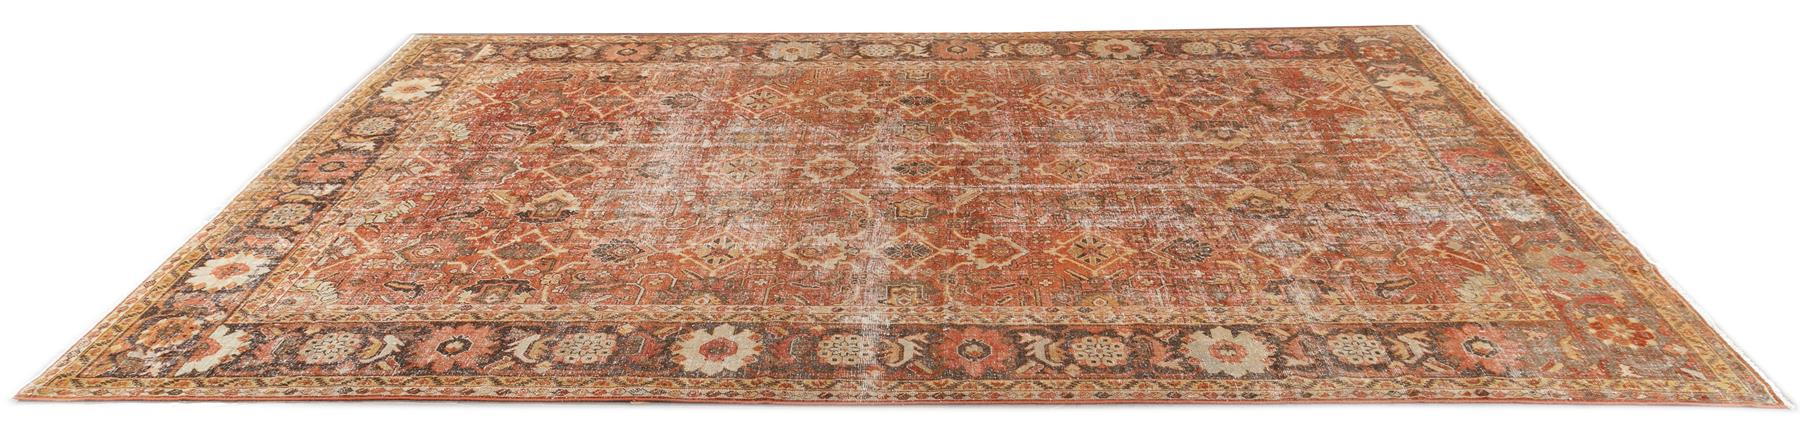 Antique Mahal Rug, 11' x 17'